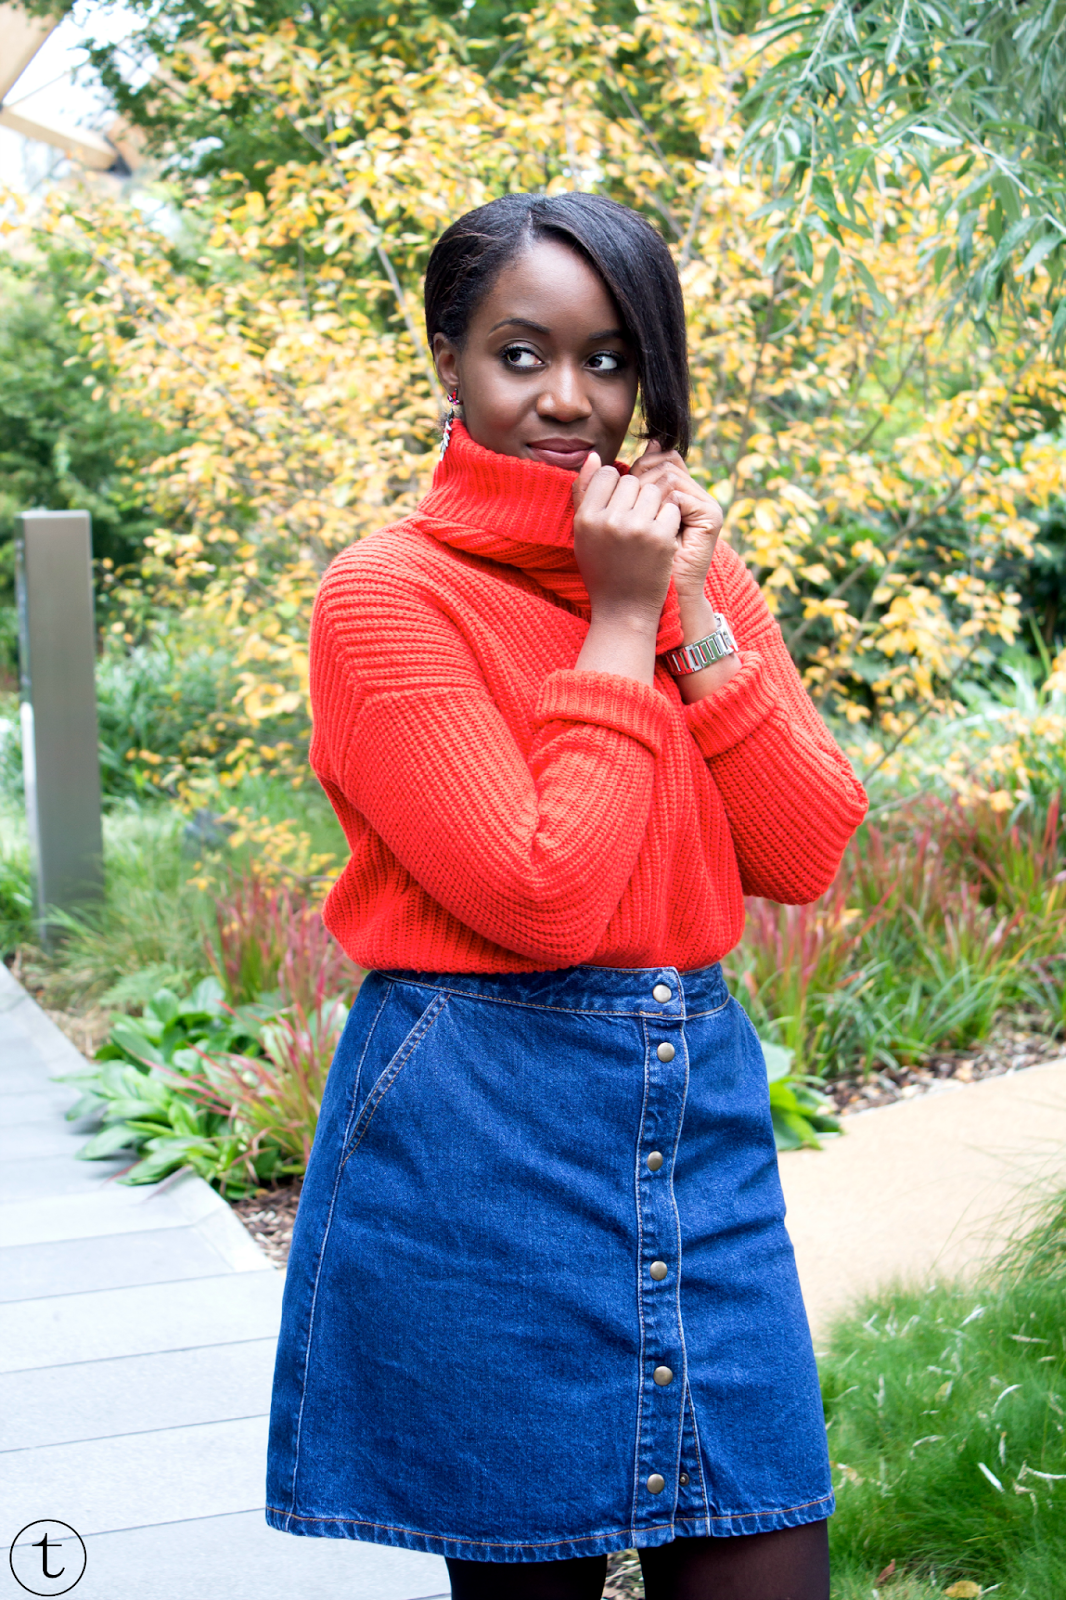 wearing an orange jumper with a jeans skirt from asos